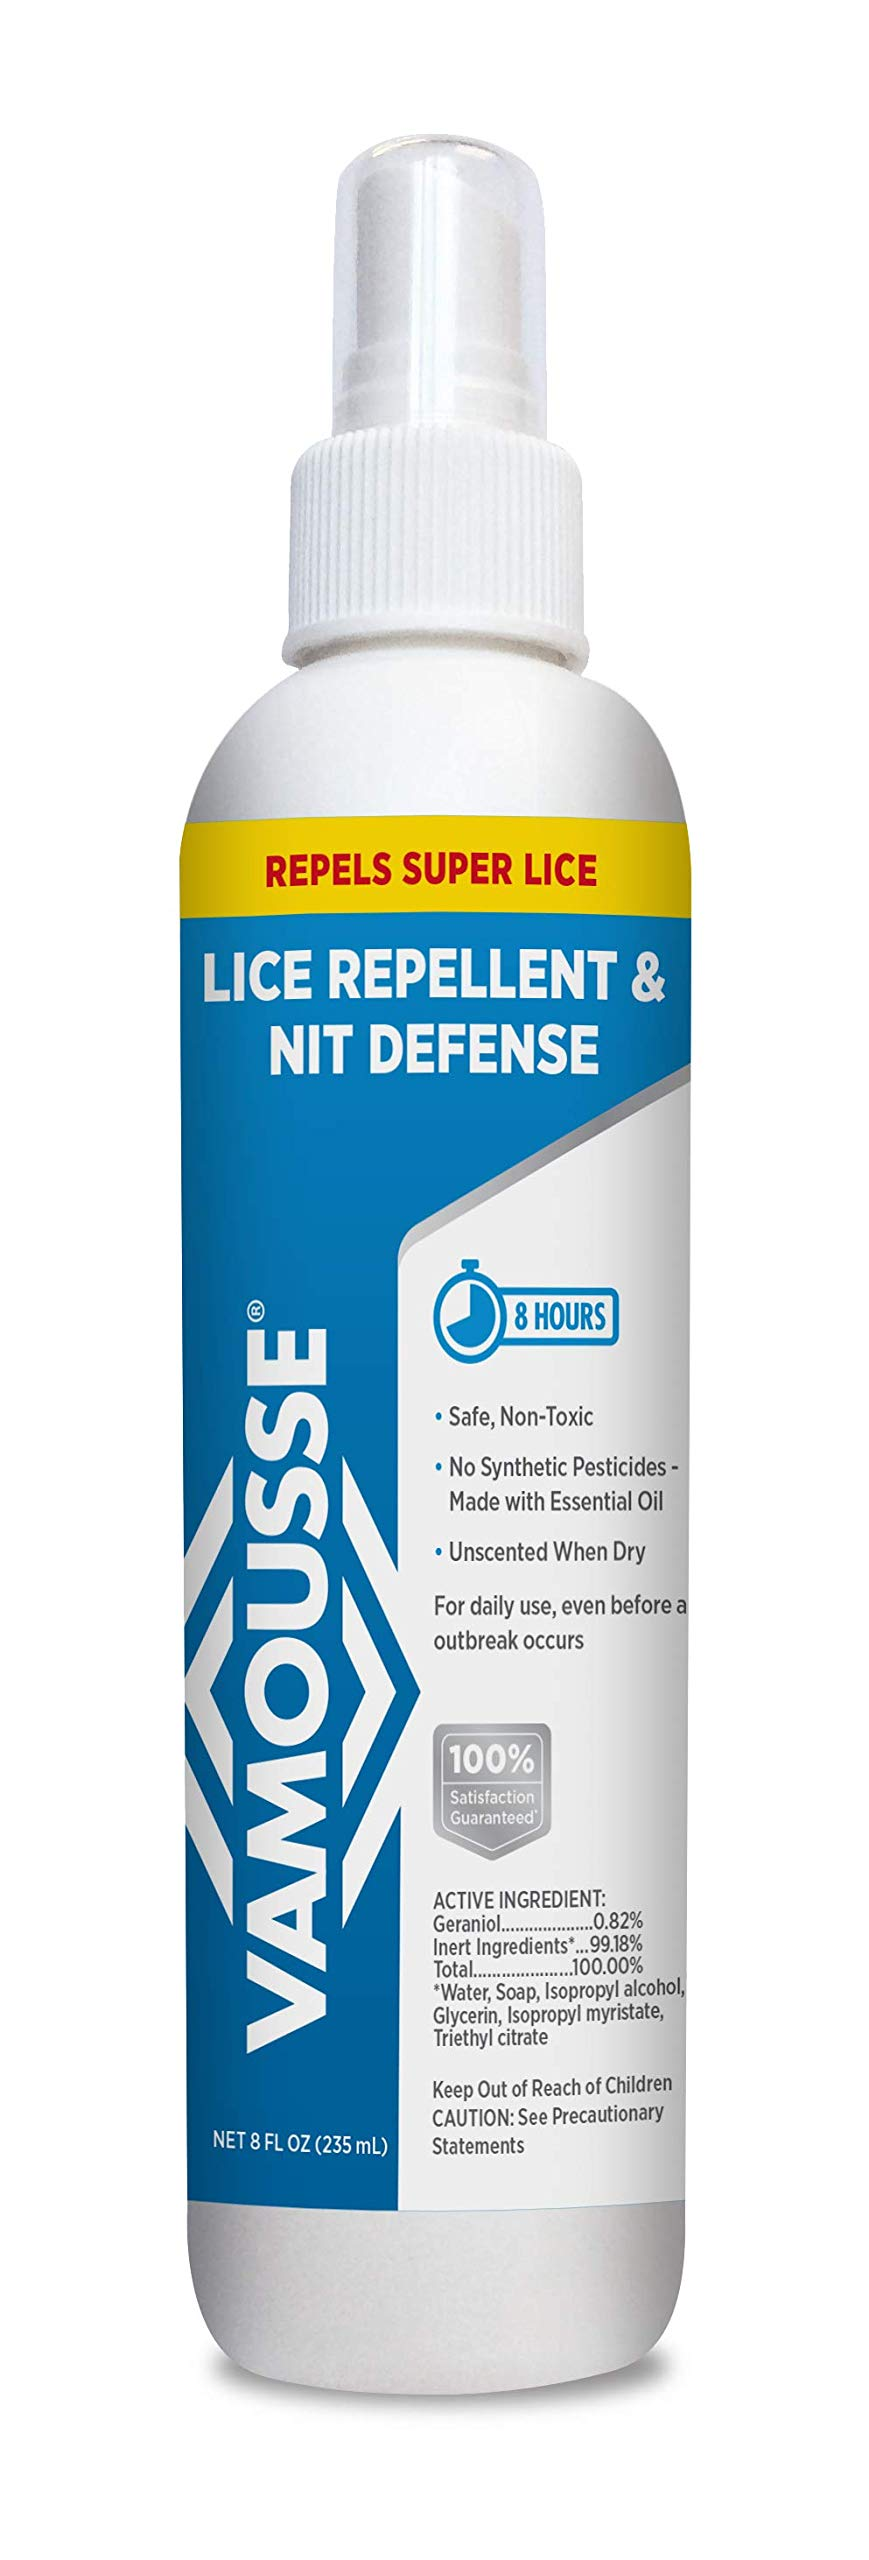 Vamousse Lice Repellent and Nit Defense, 8 Fluid Ounce by Vamousse